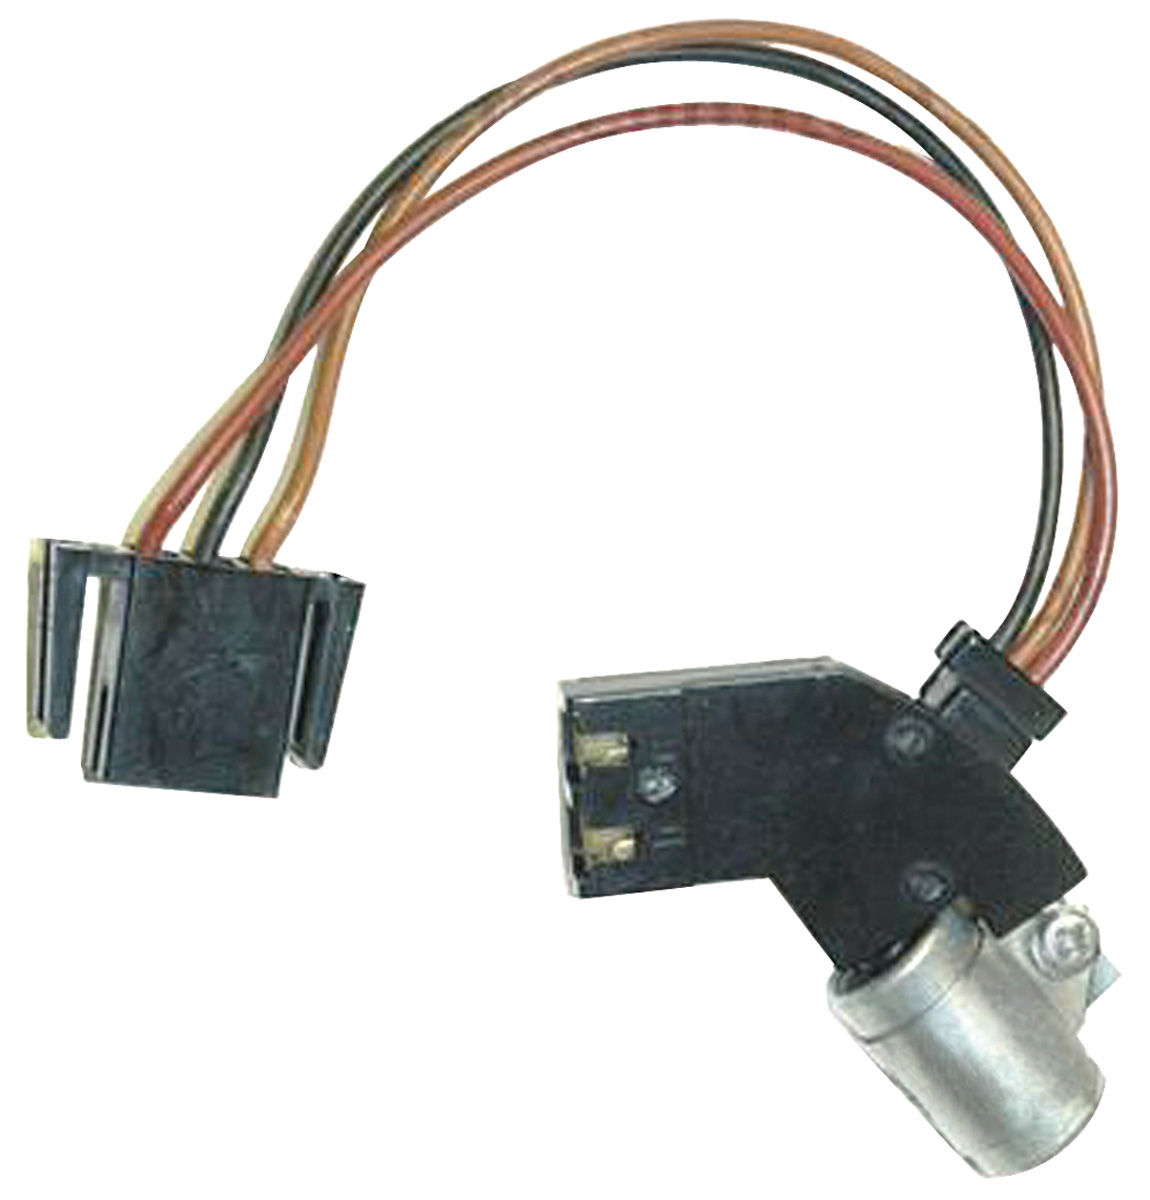 hight resolution of monte carlo ignition module to coil harness hei 3 5 wires tap to enlarge